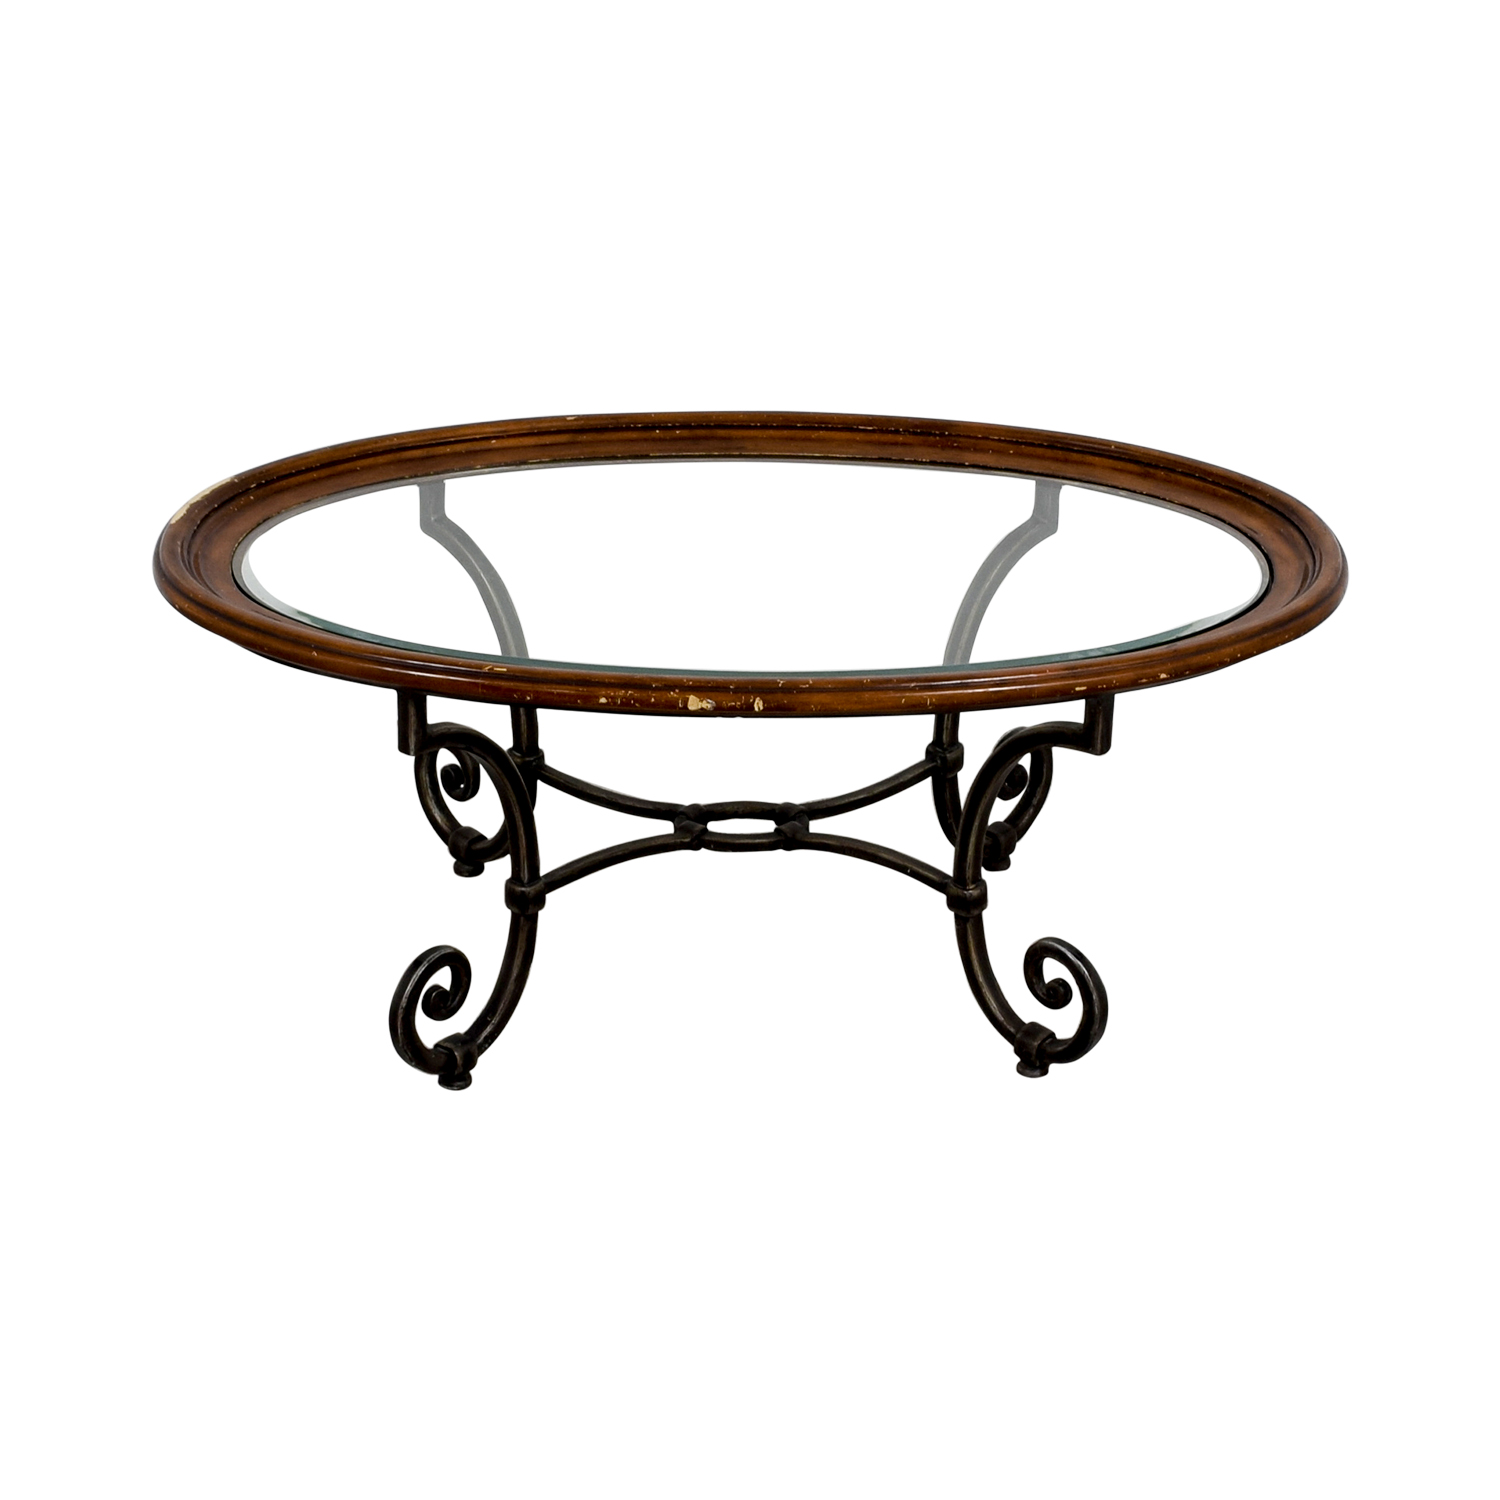 Ethan Allen Coffee Table Glass Top: Arco Furniture